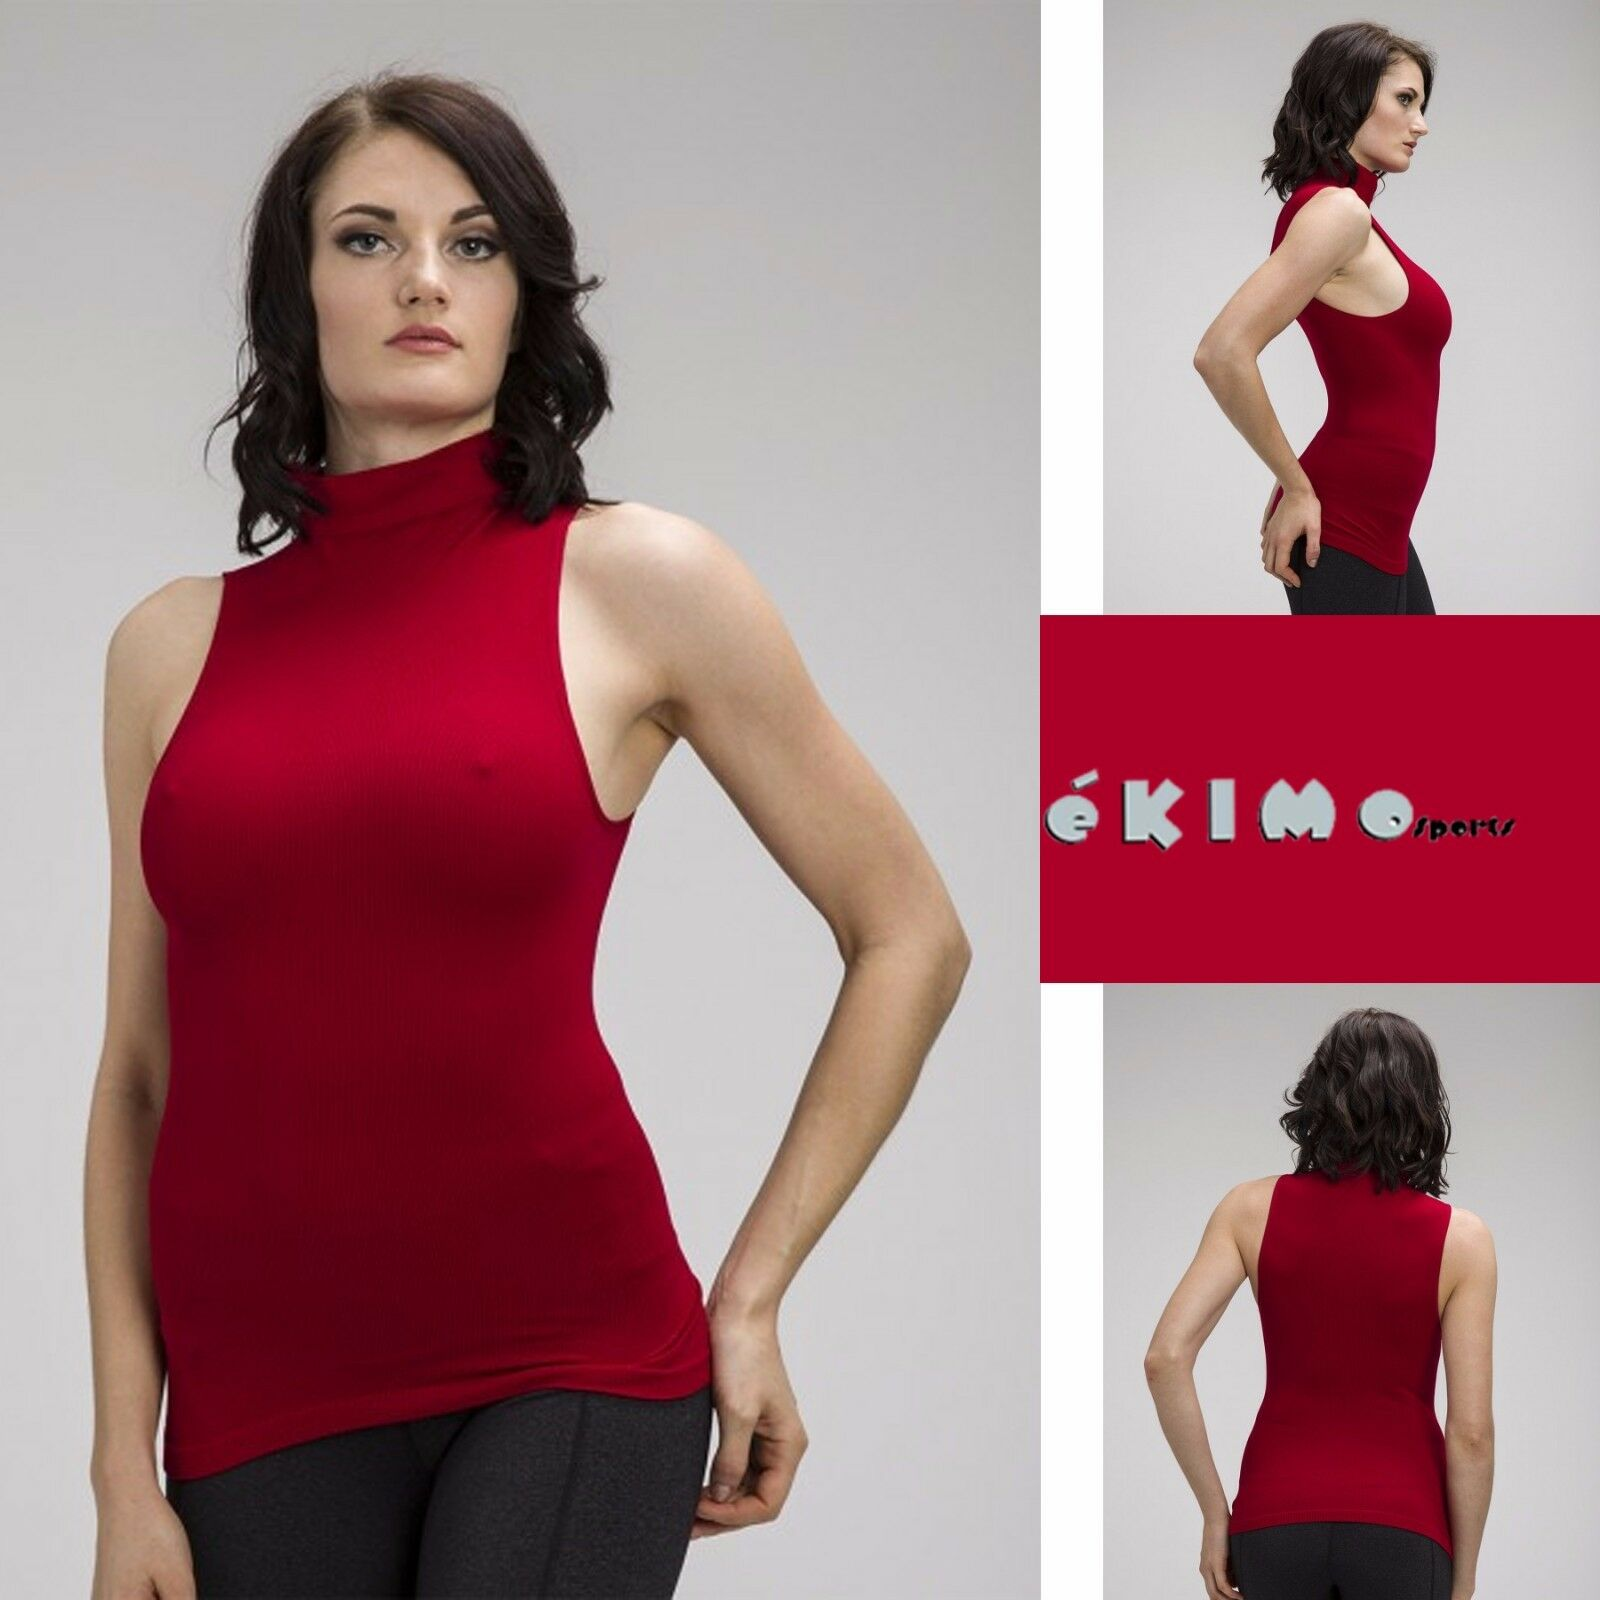 Women sleeveless mock neck shirt turtleneck tank top for Sleeveless mock turtleneck shirts